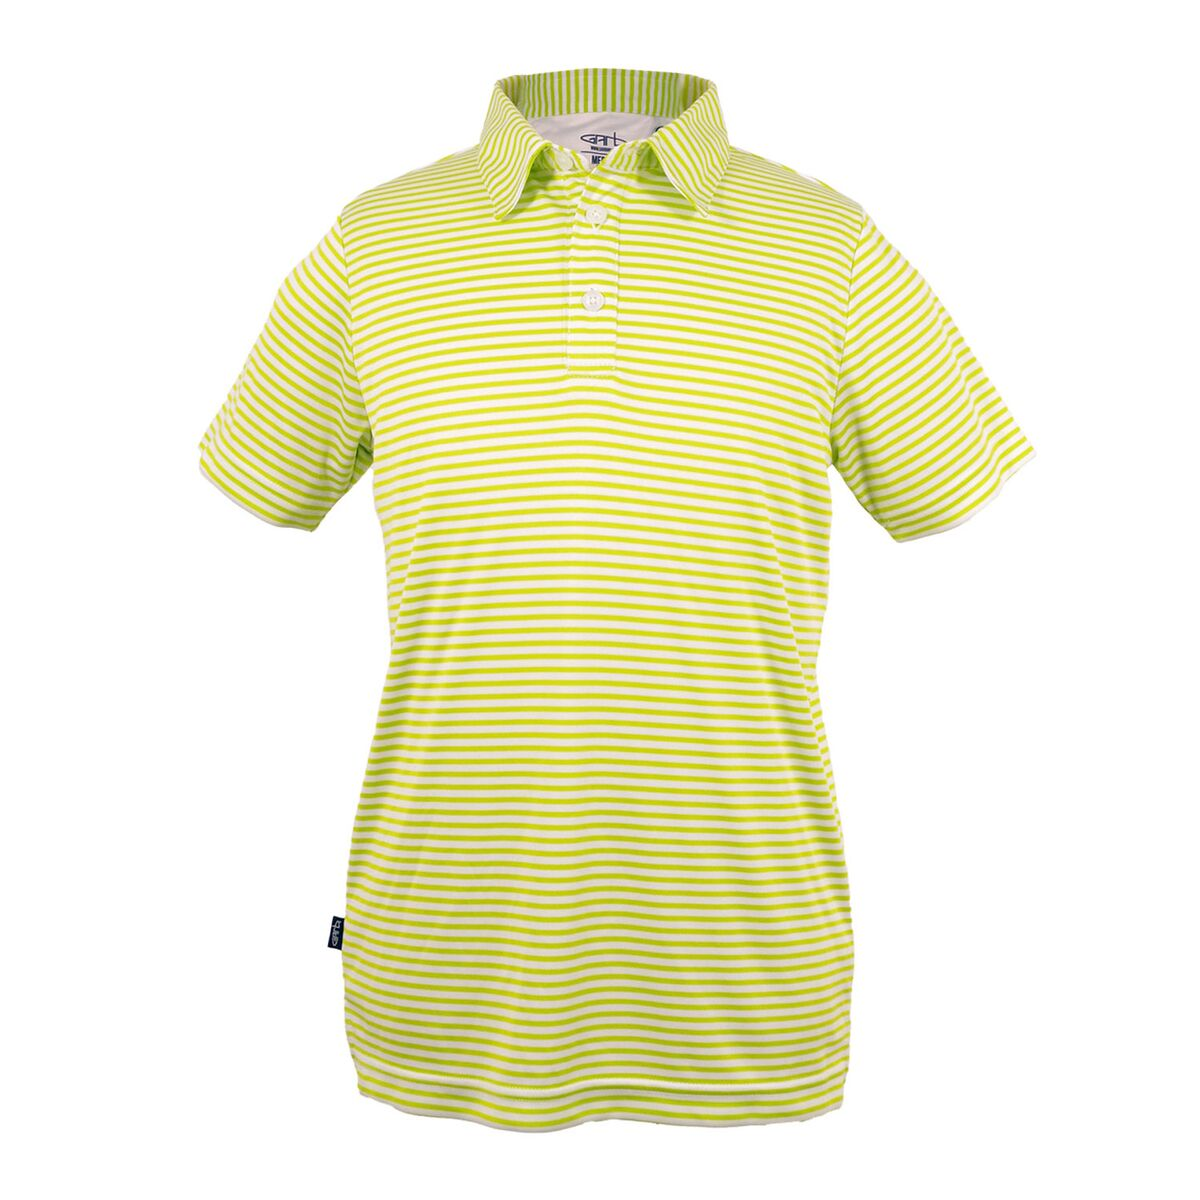 Chandler - Toddler Boys Lime Green Striped Polo